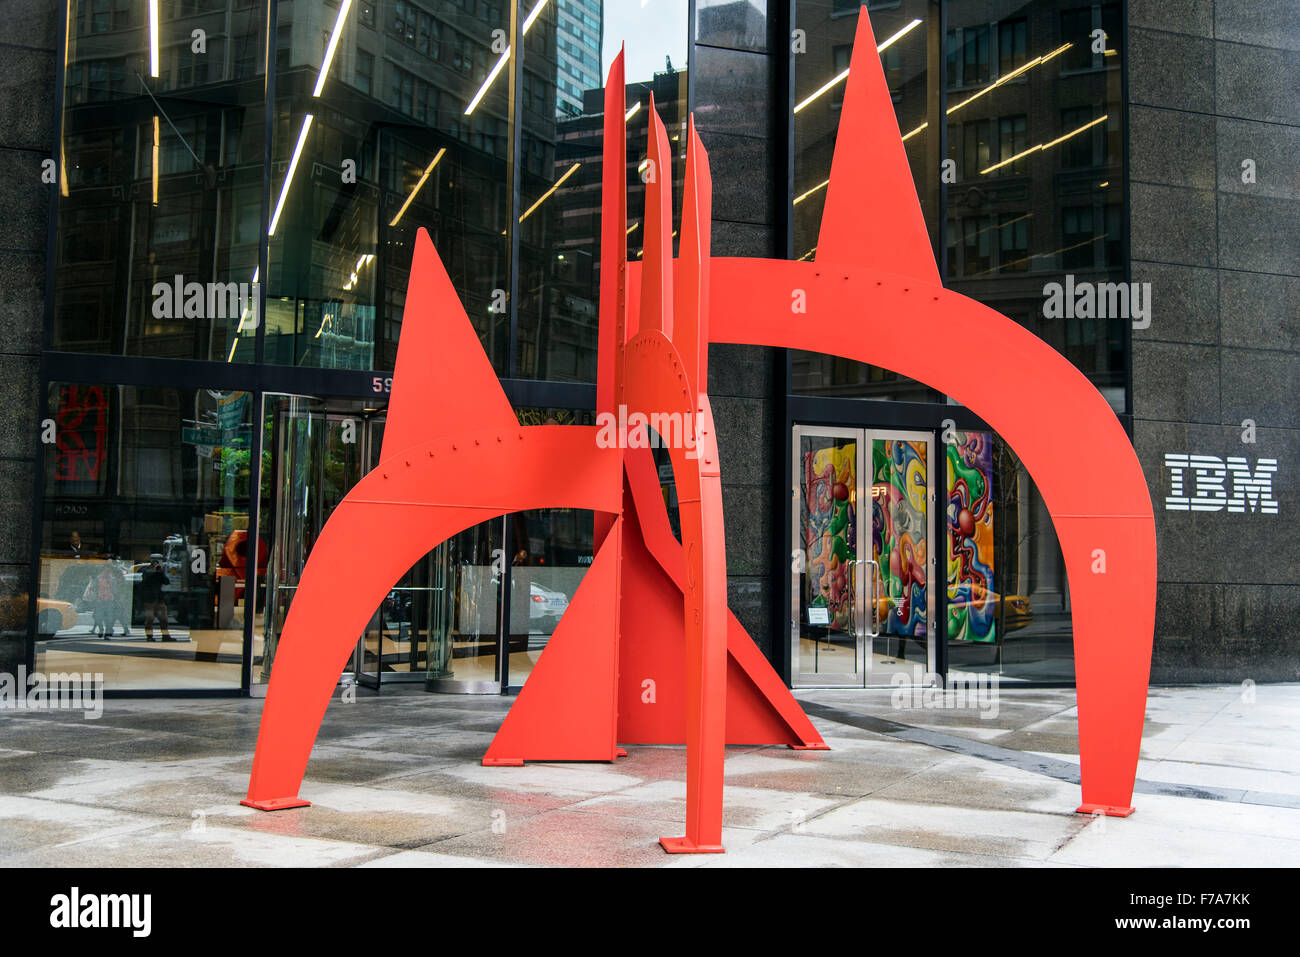 Red Saurien sculpture outside the IBM Building, Manhattan, New York, USA - Stock Image